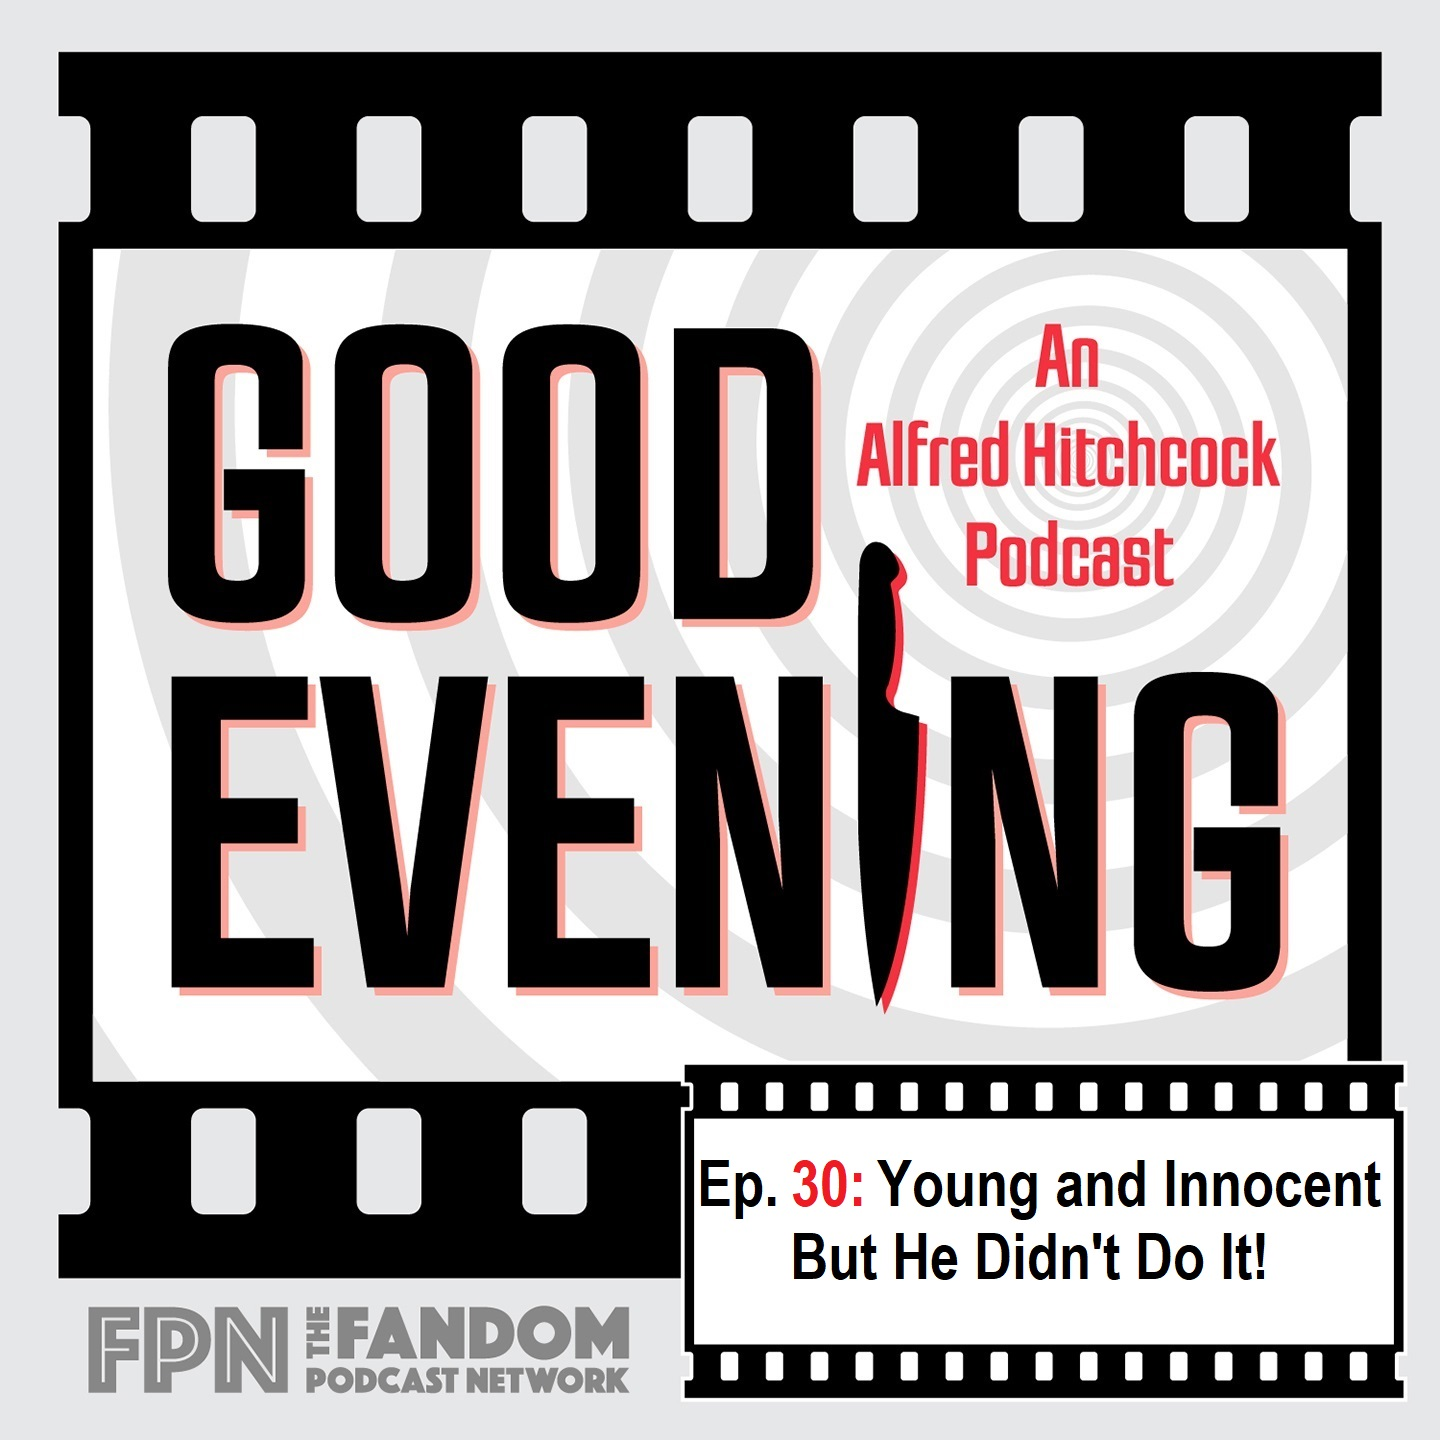 Good Evening Episode 30: But He Didn't Do It: Young and Innocent